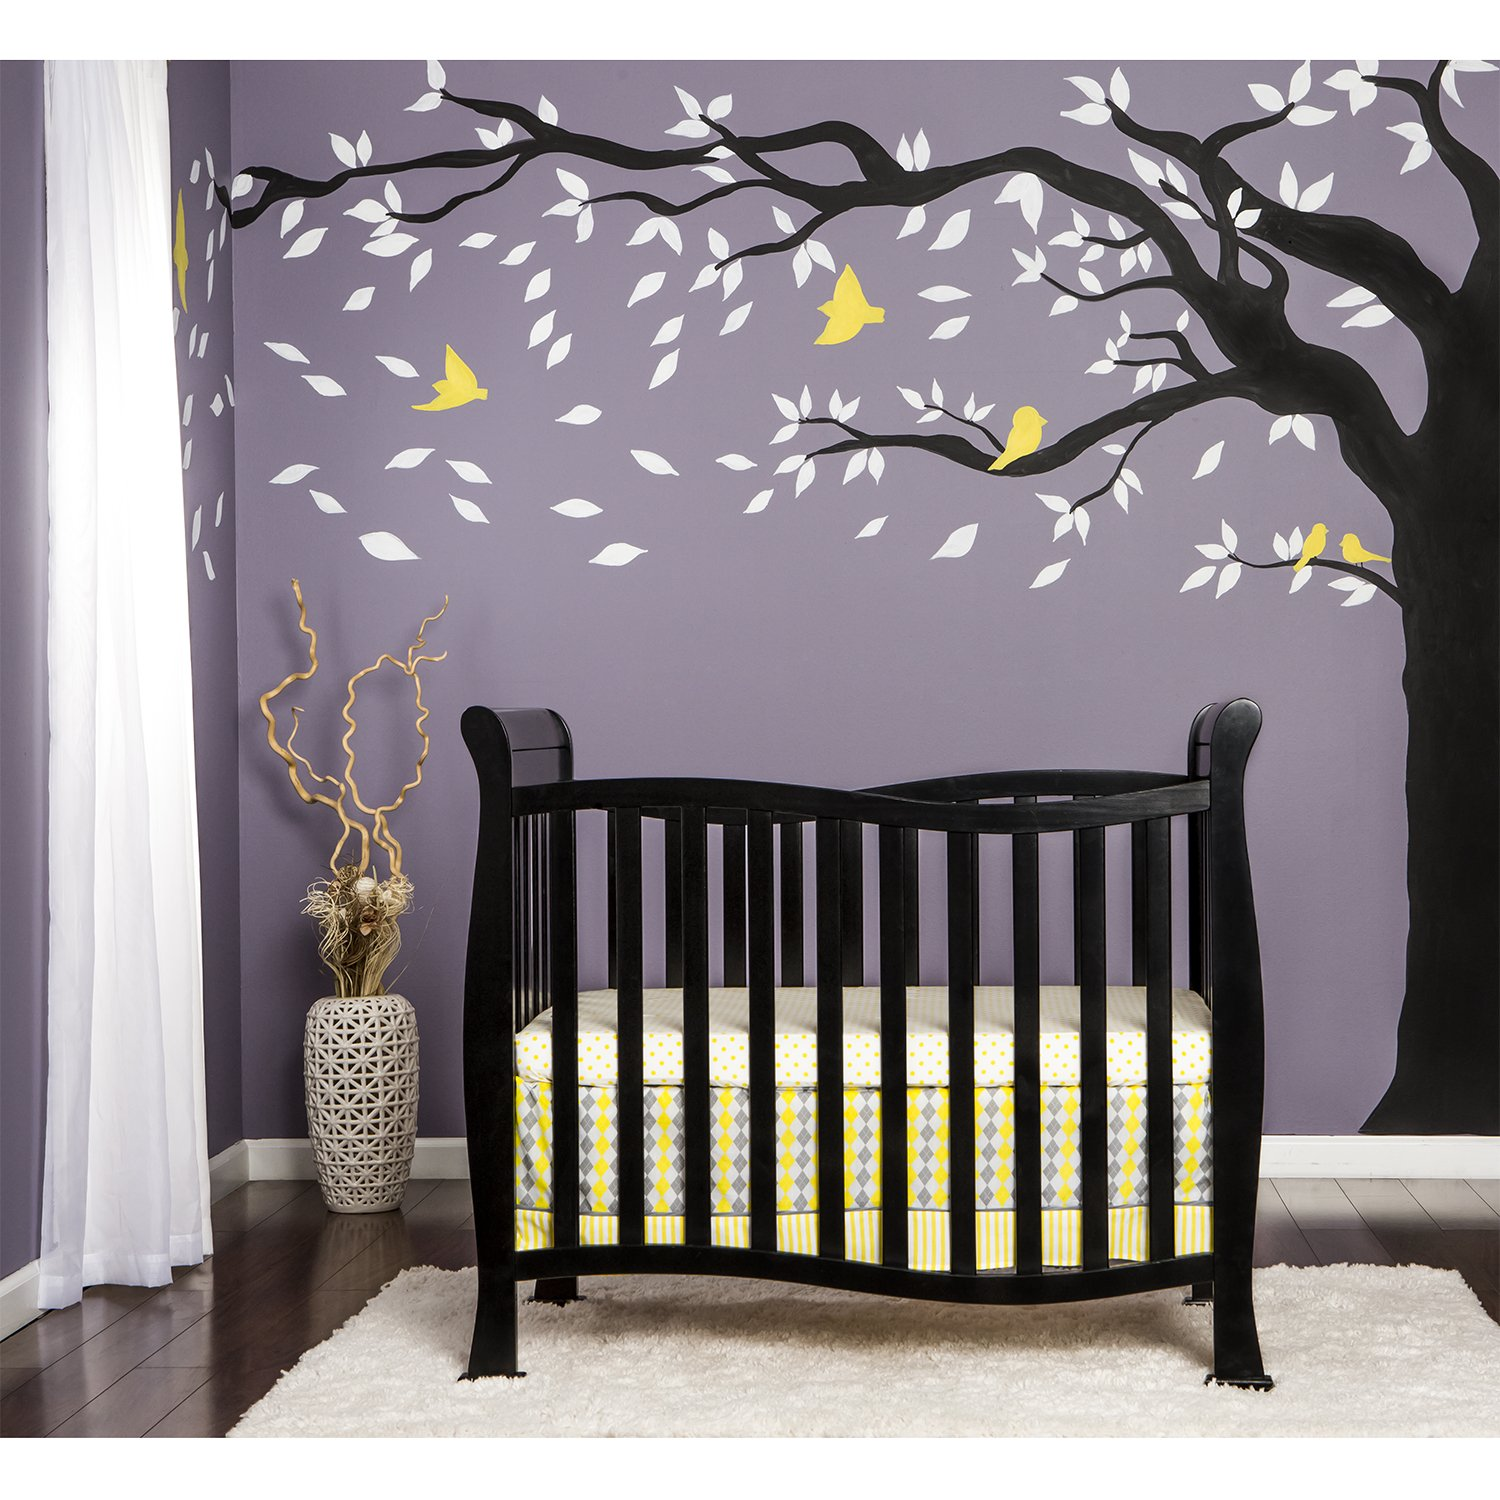 it convertible me the pin is from infancy by in designed aden and be a stylishly multipurpose can on mini cribs child crib dream used your